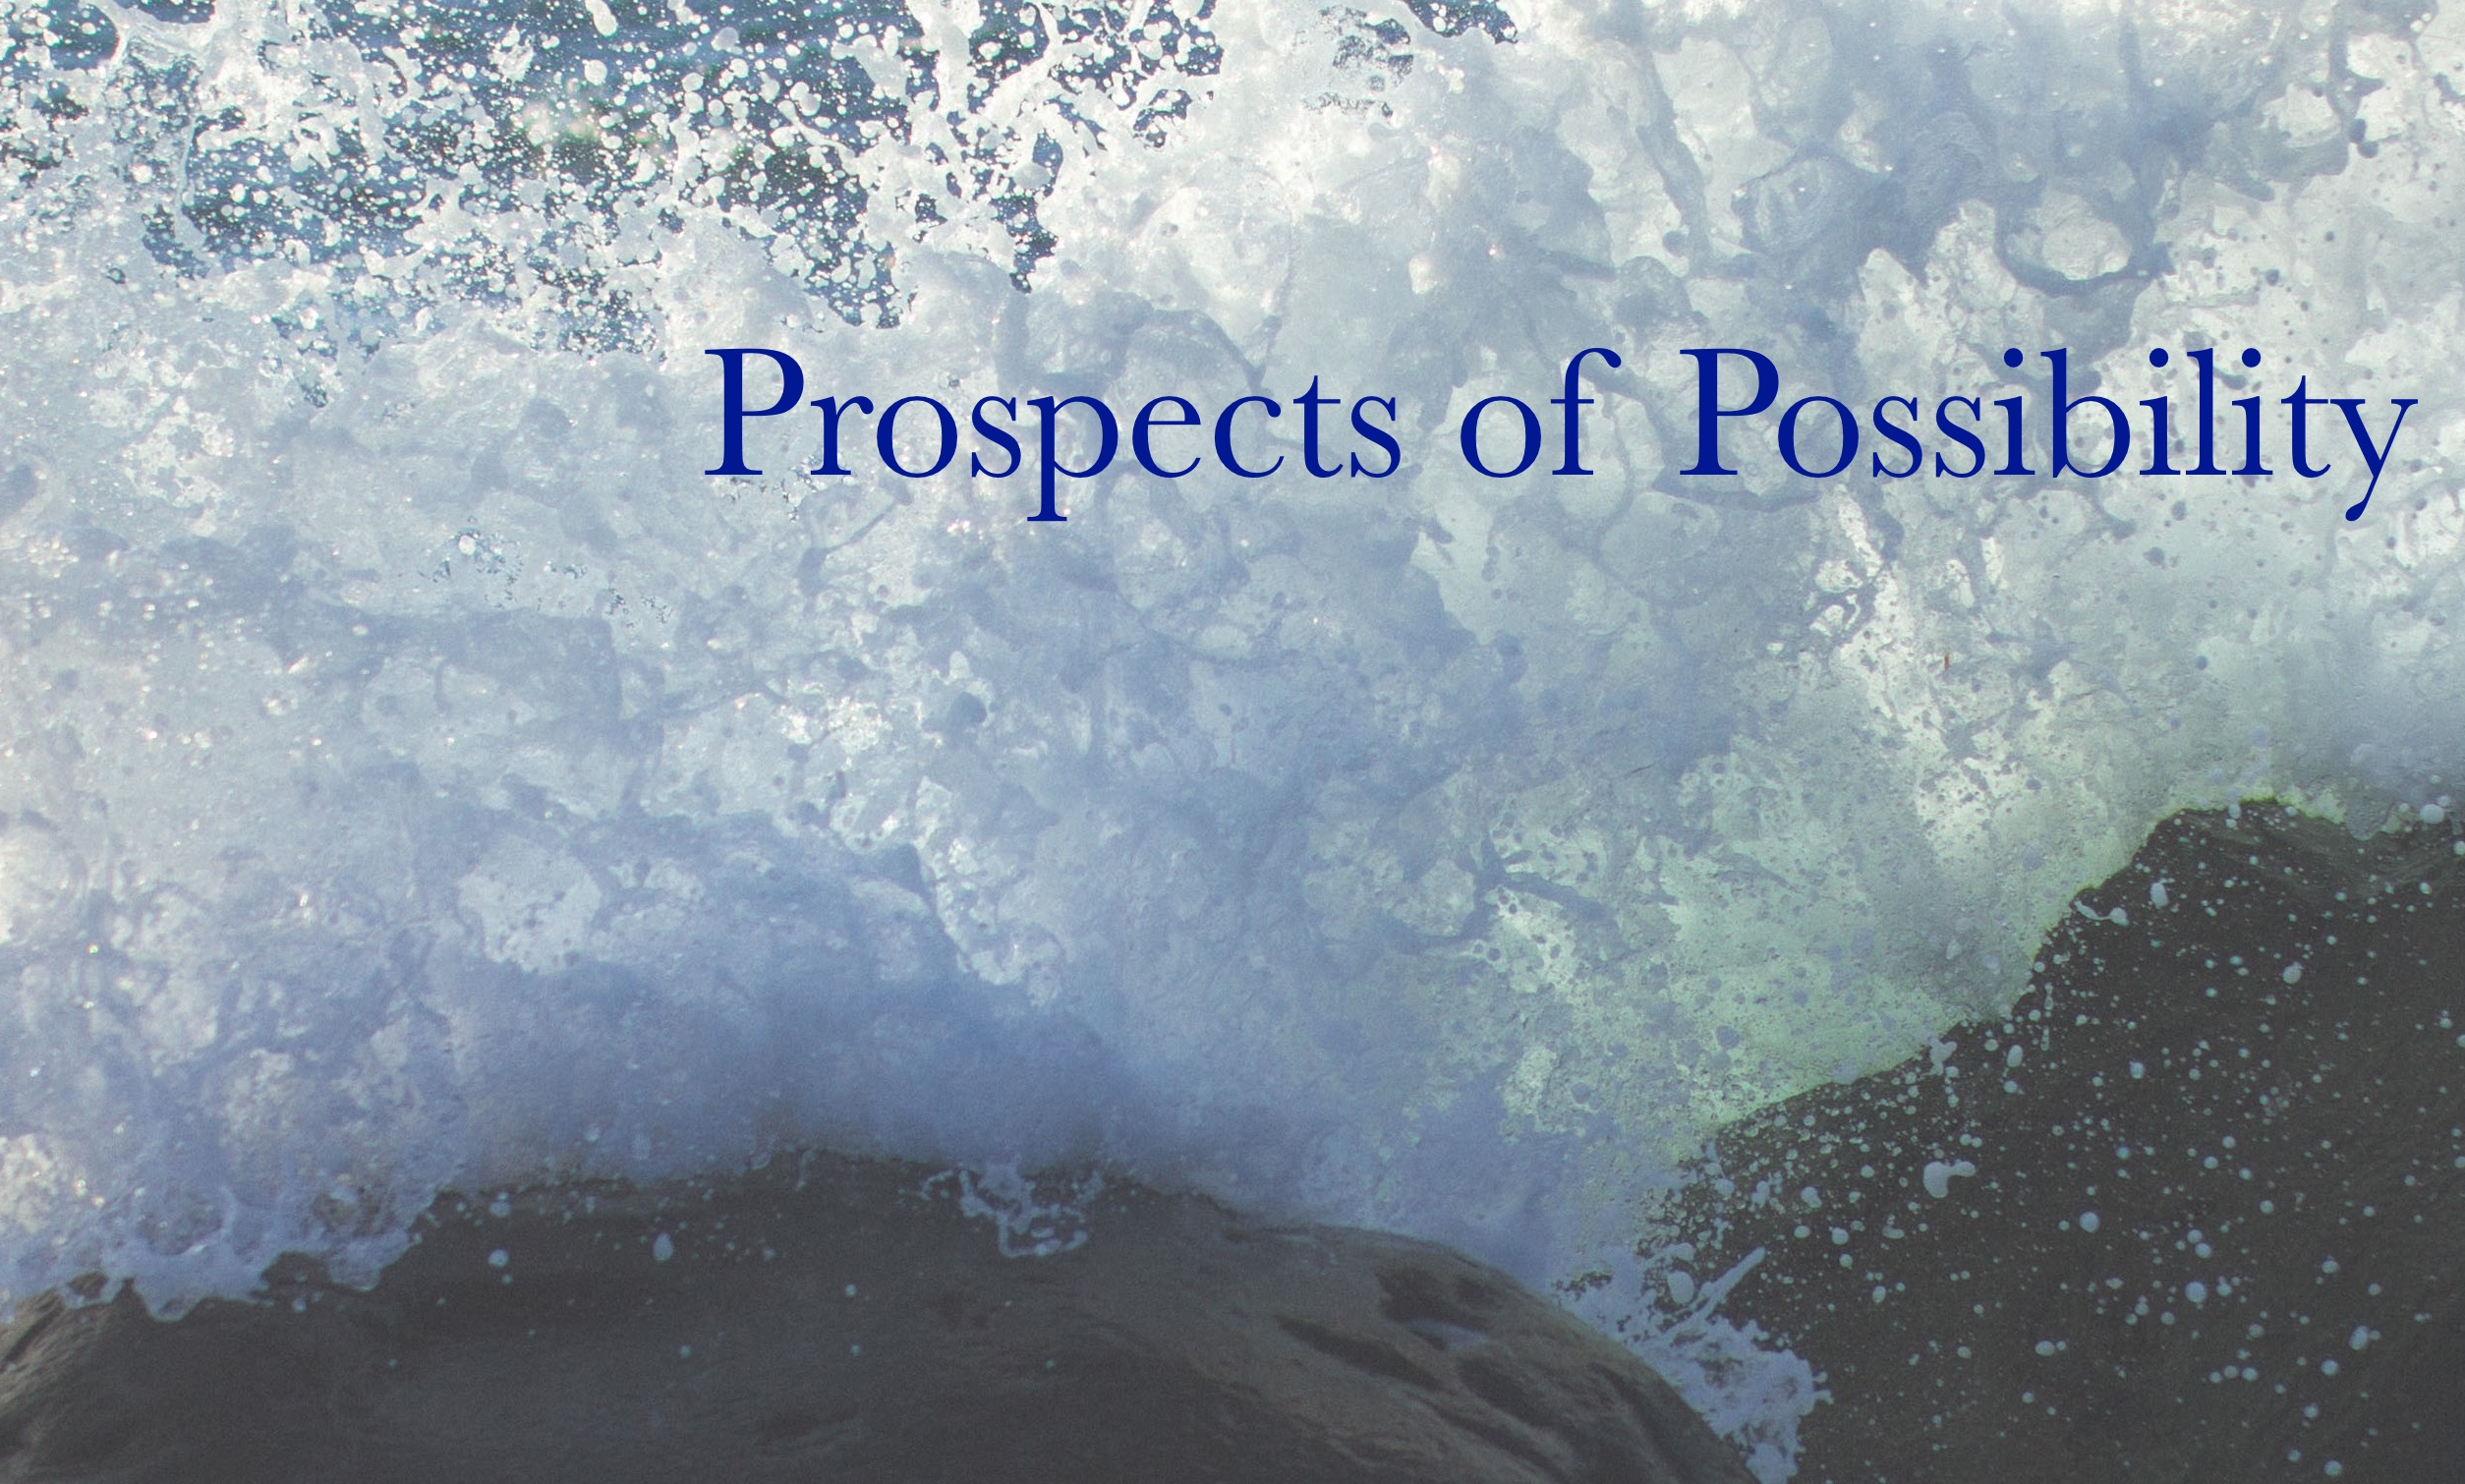 Prospects-of-Possiblity1